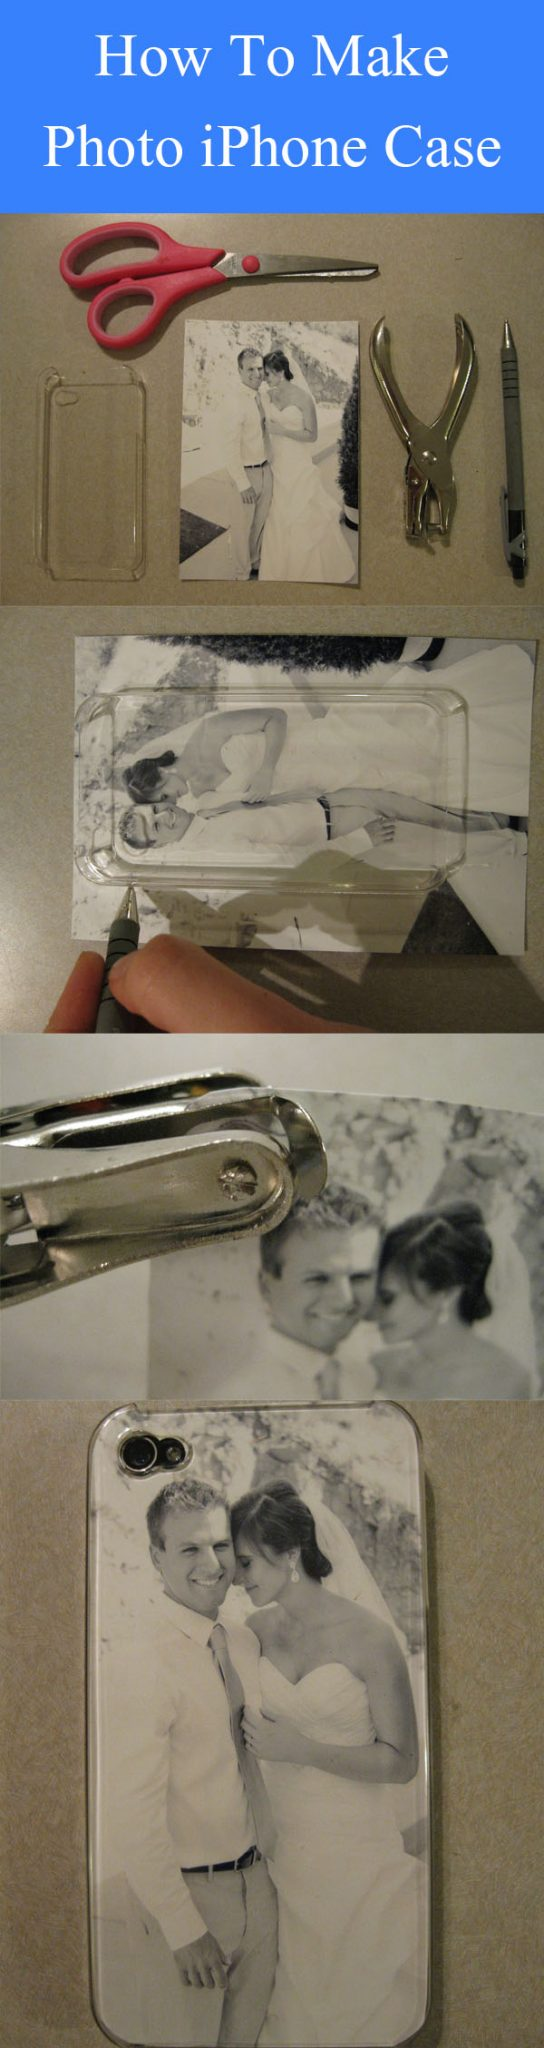 DIY Photo iPhone Case